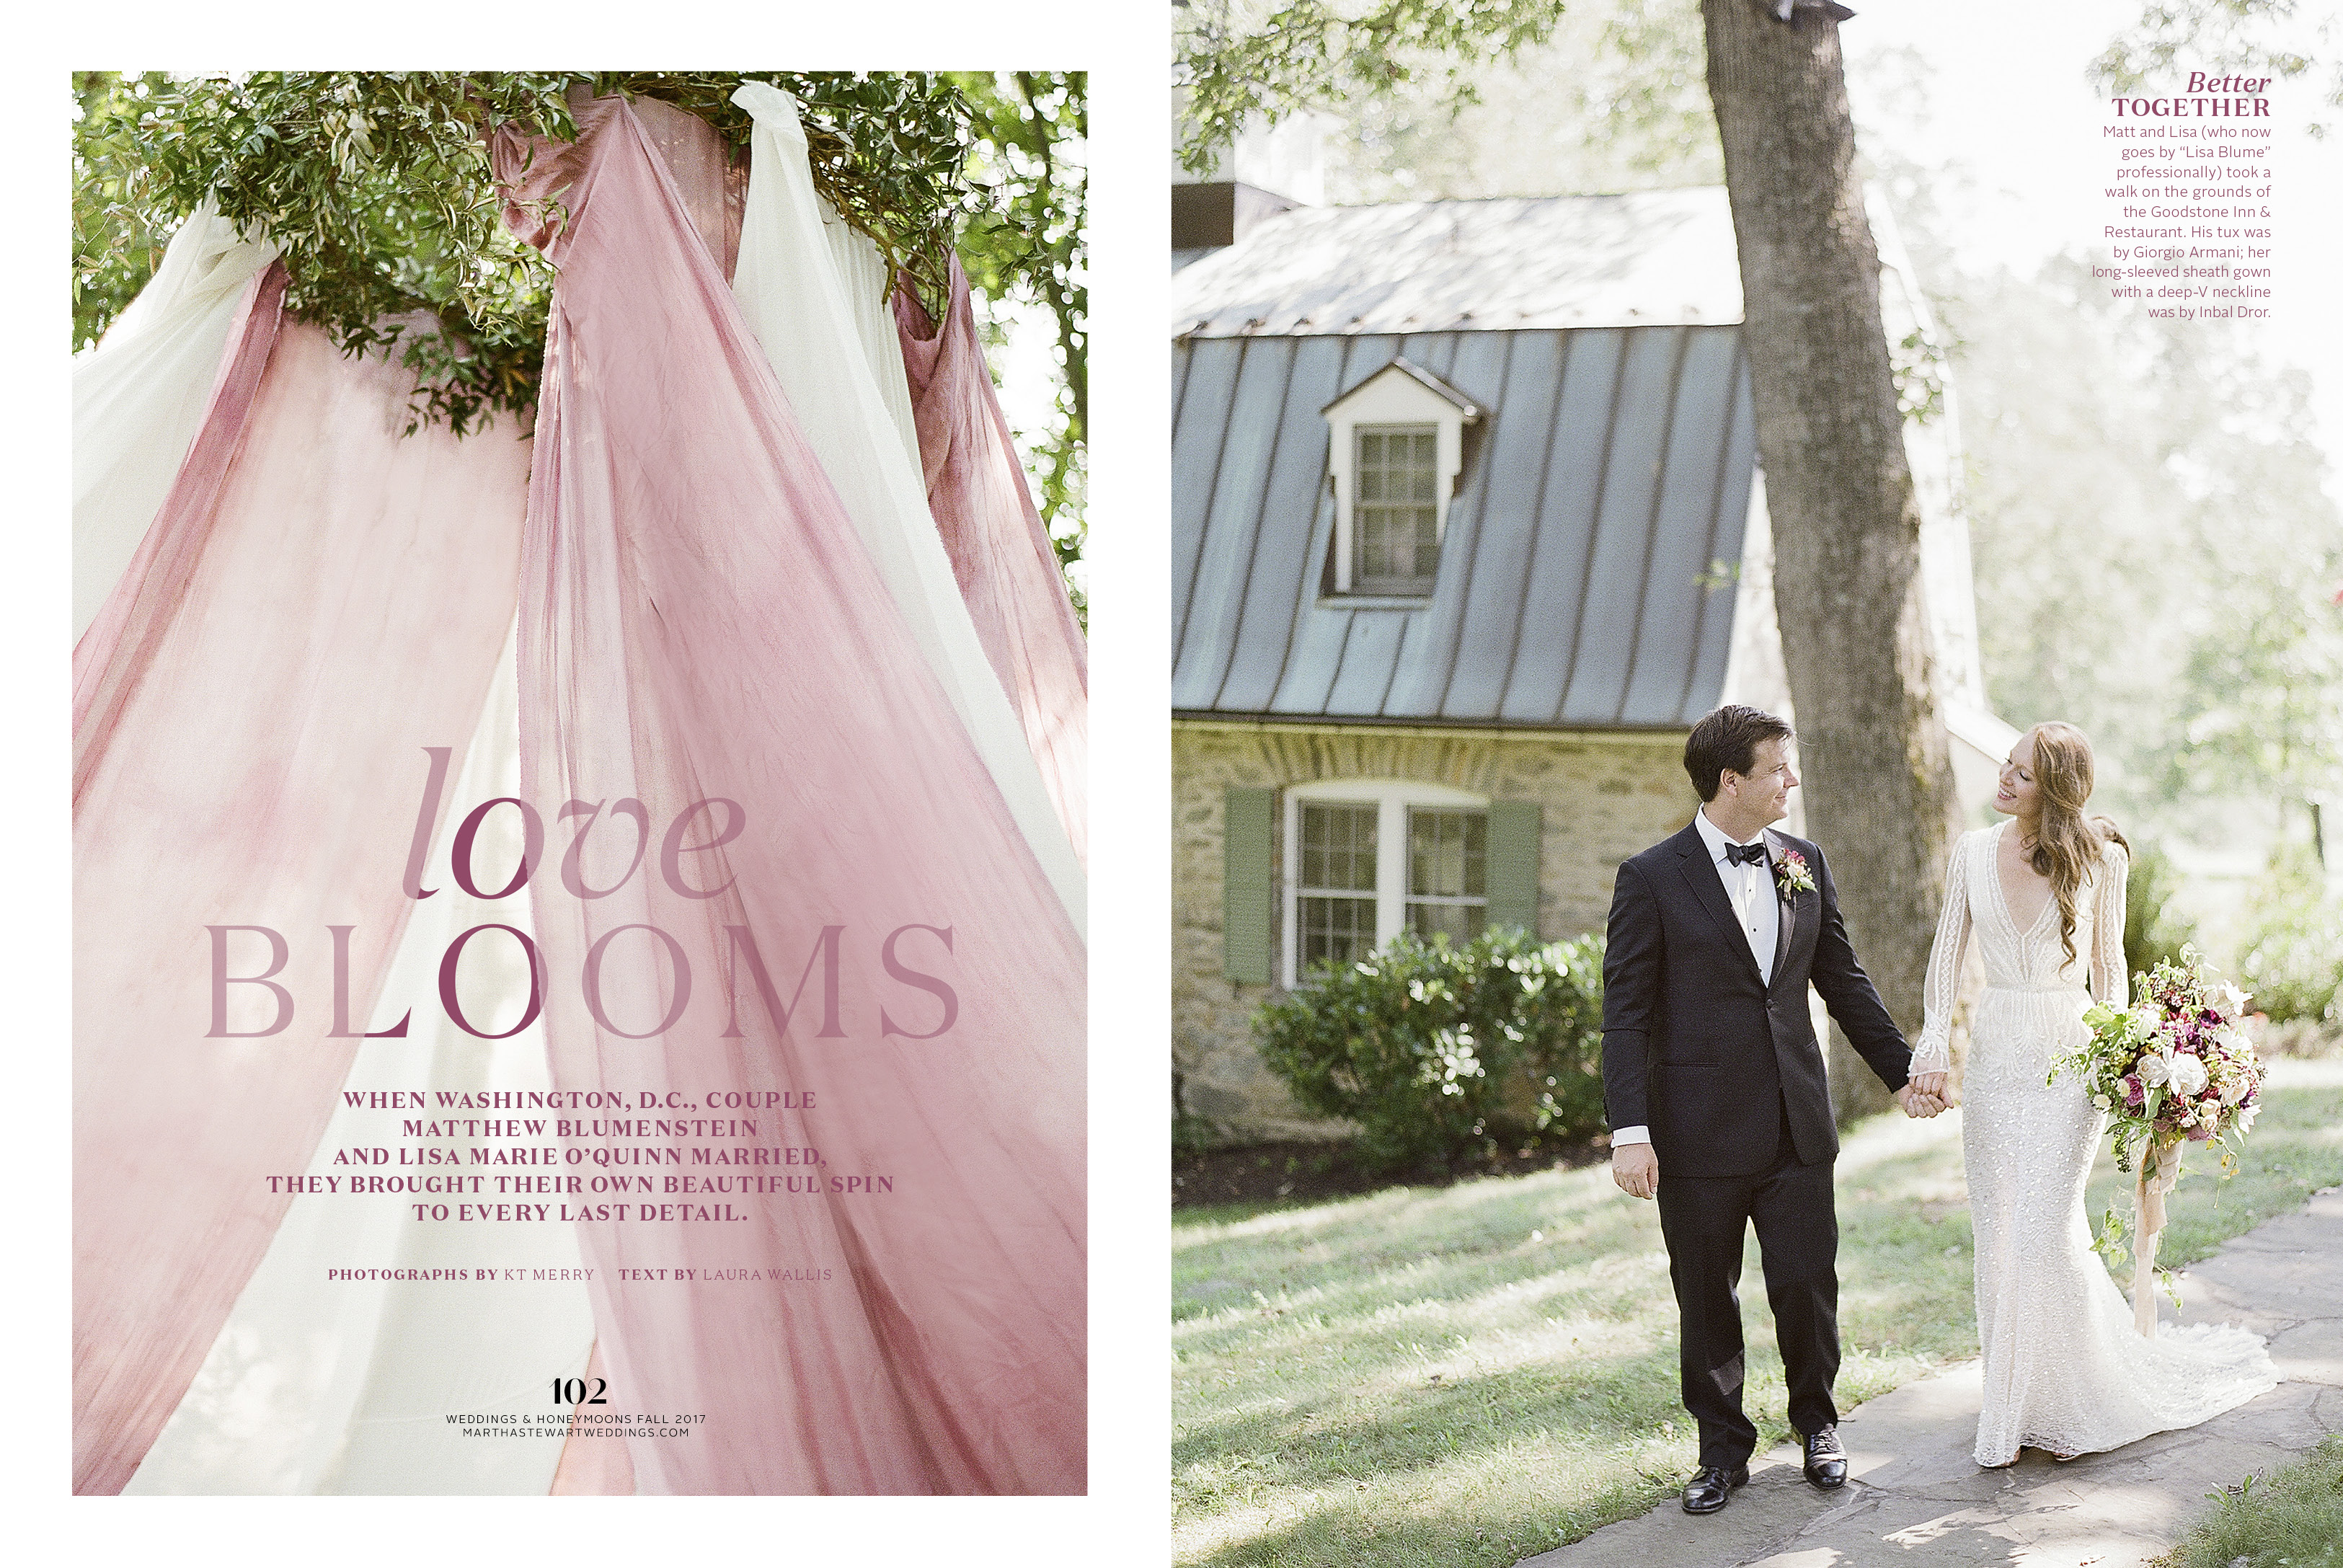 Featured in Martha Stewart Weddings – On Stands Now!